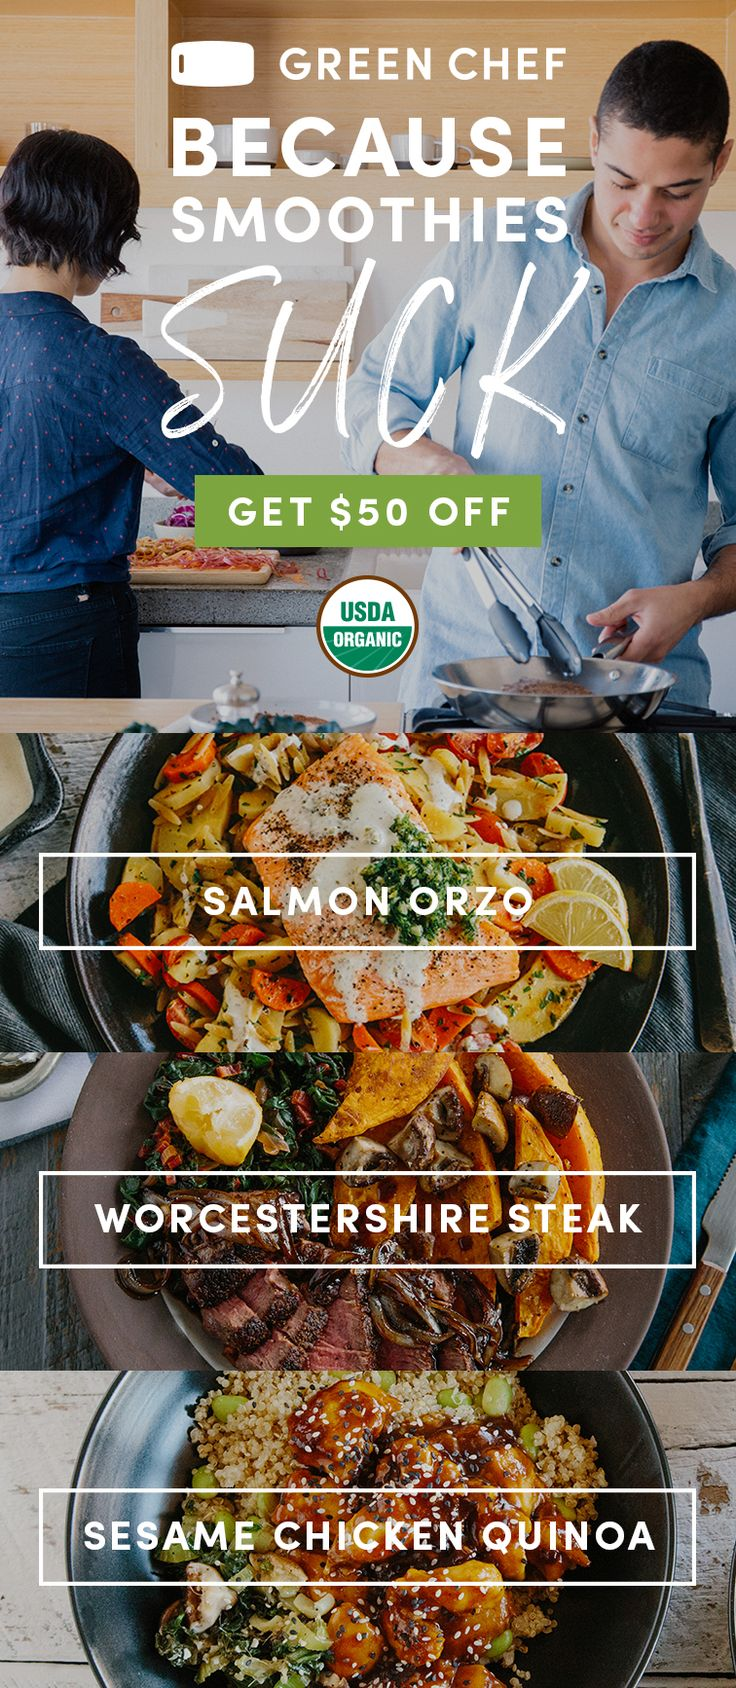 Who says living healthy means eating boring? Not us! Treat yo'self with organic, delicious, easy-to-cook meals from Green Chef. We deliver organic ingredients and 30-min recipes directly to you. Fork yeah! Sign up today for $50 OFF